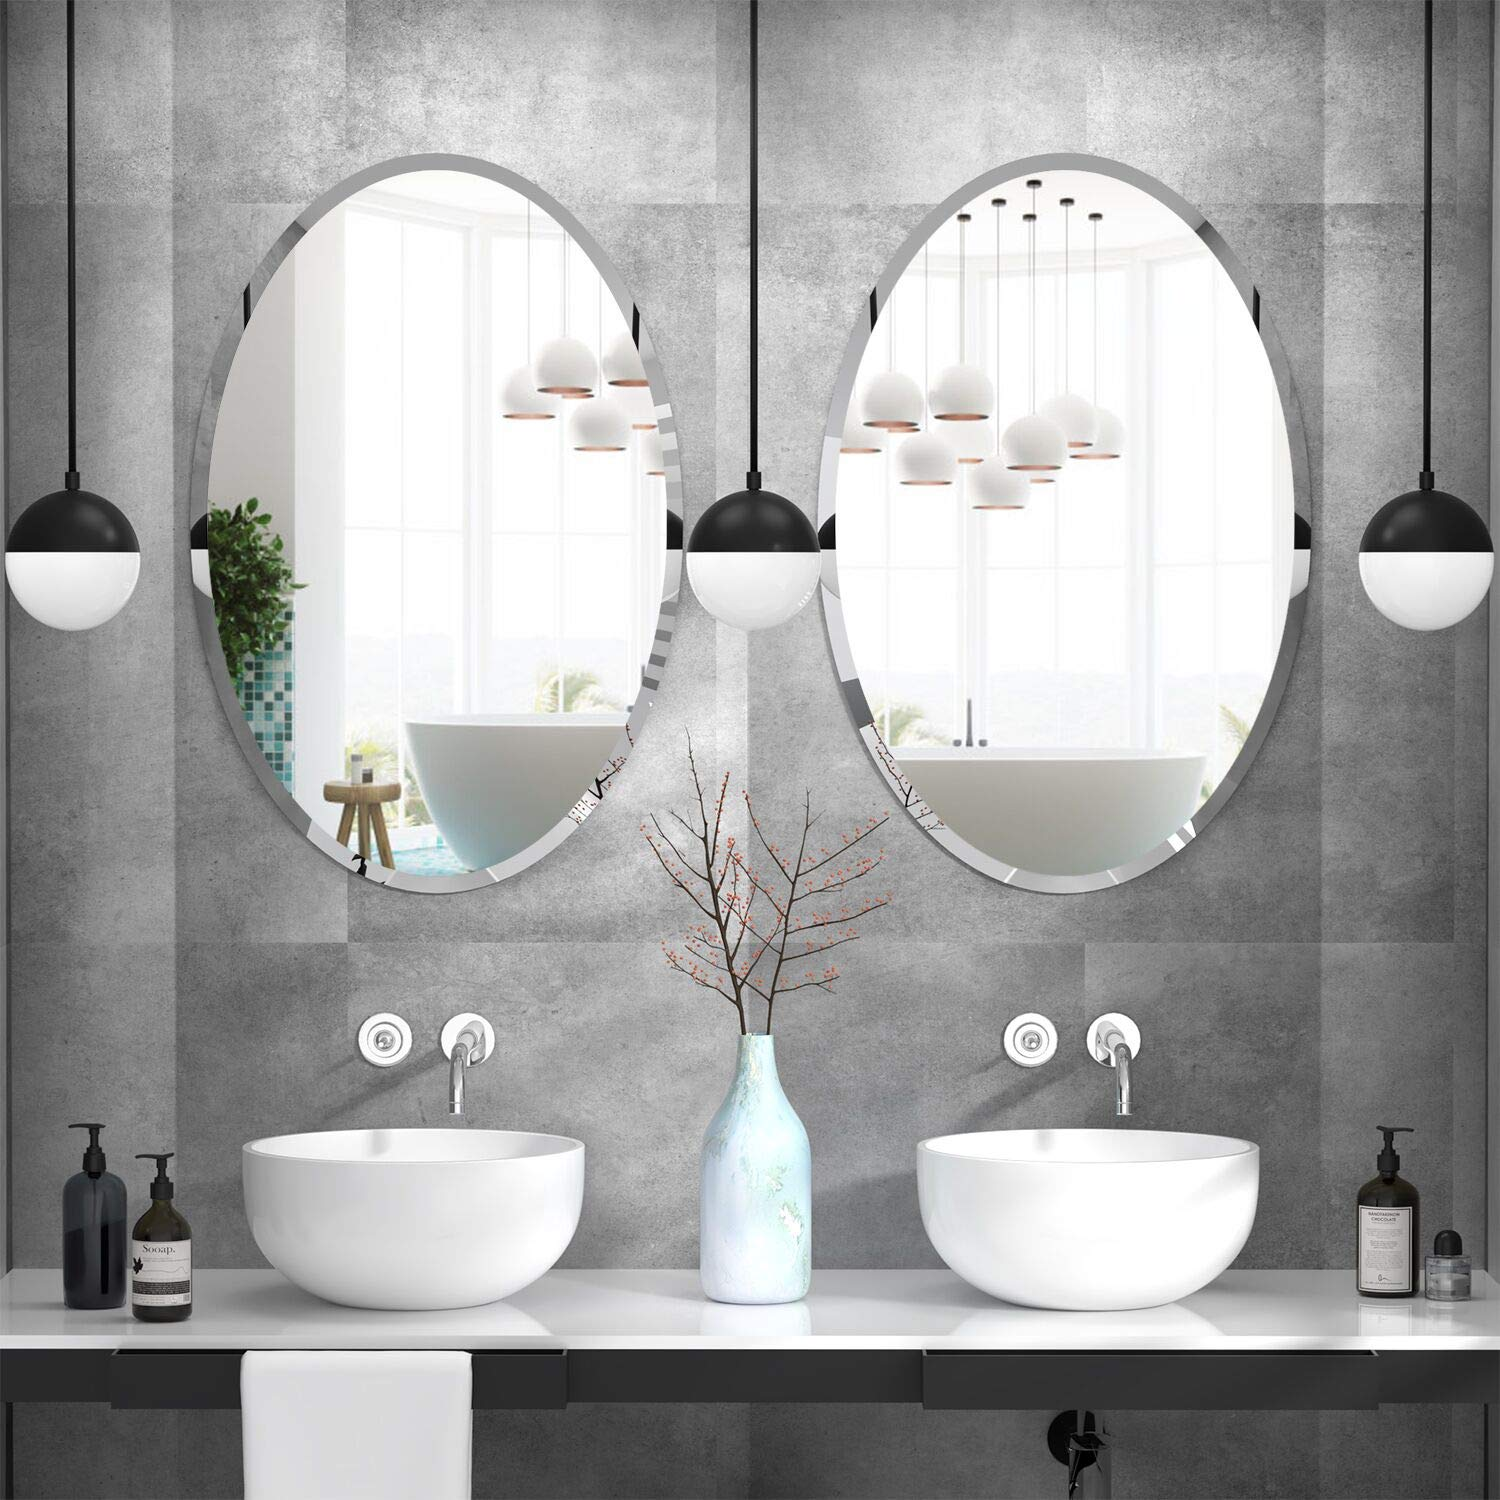 Oval Beveled Polished Frameless Wall Mirror for Bathroom